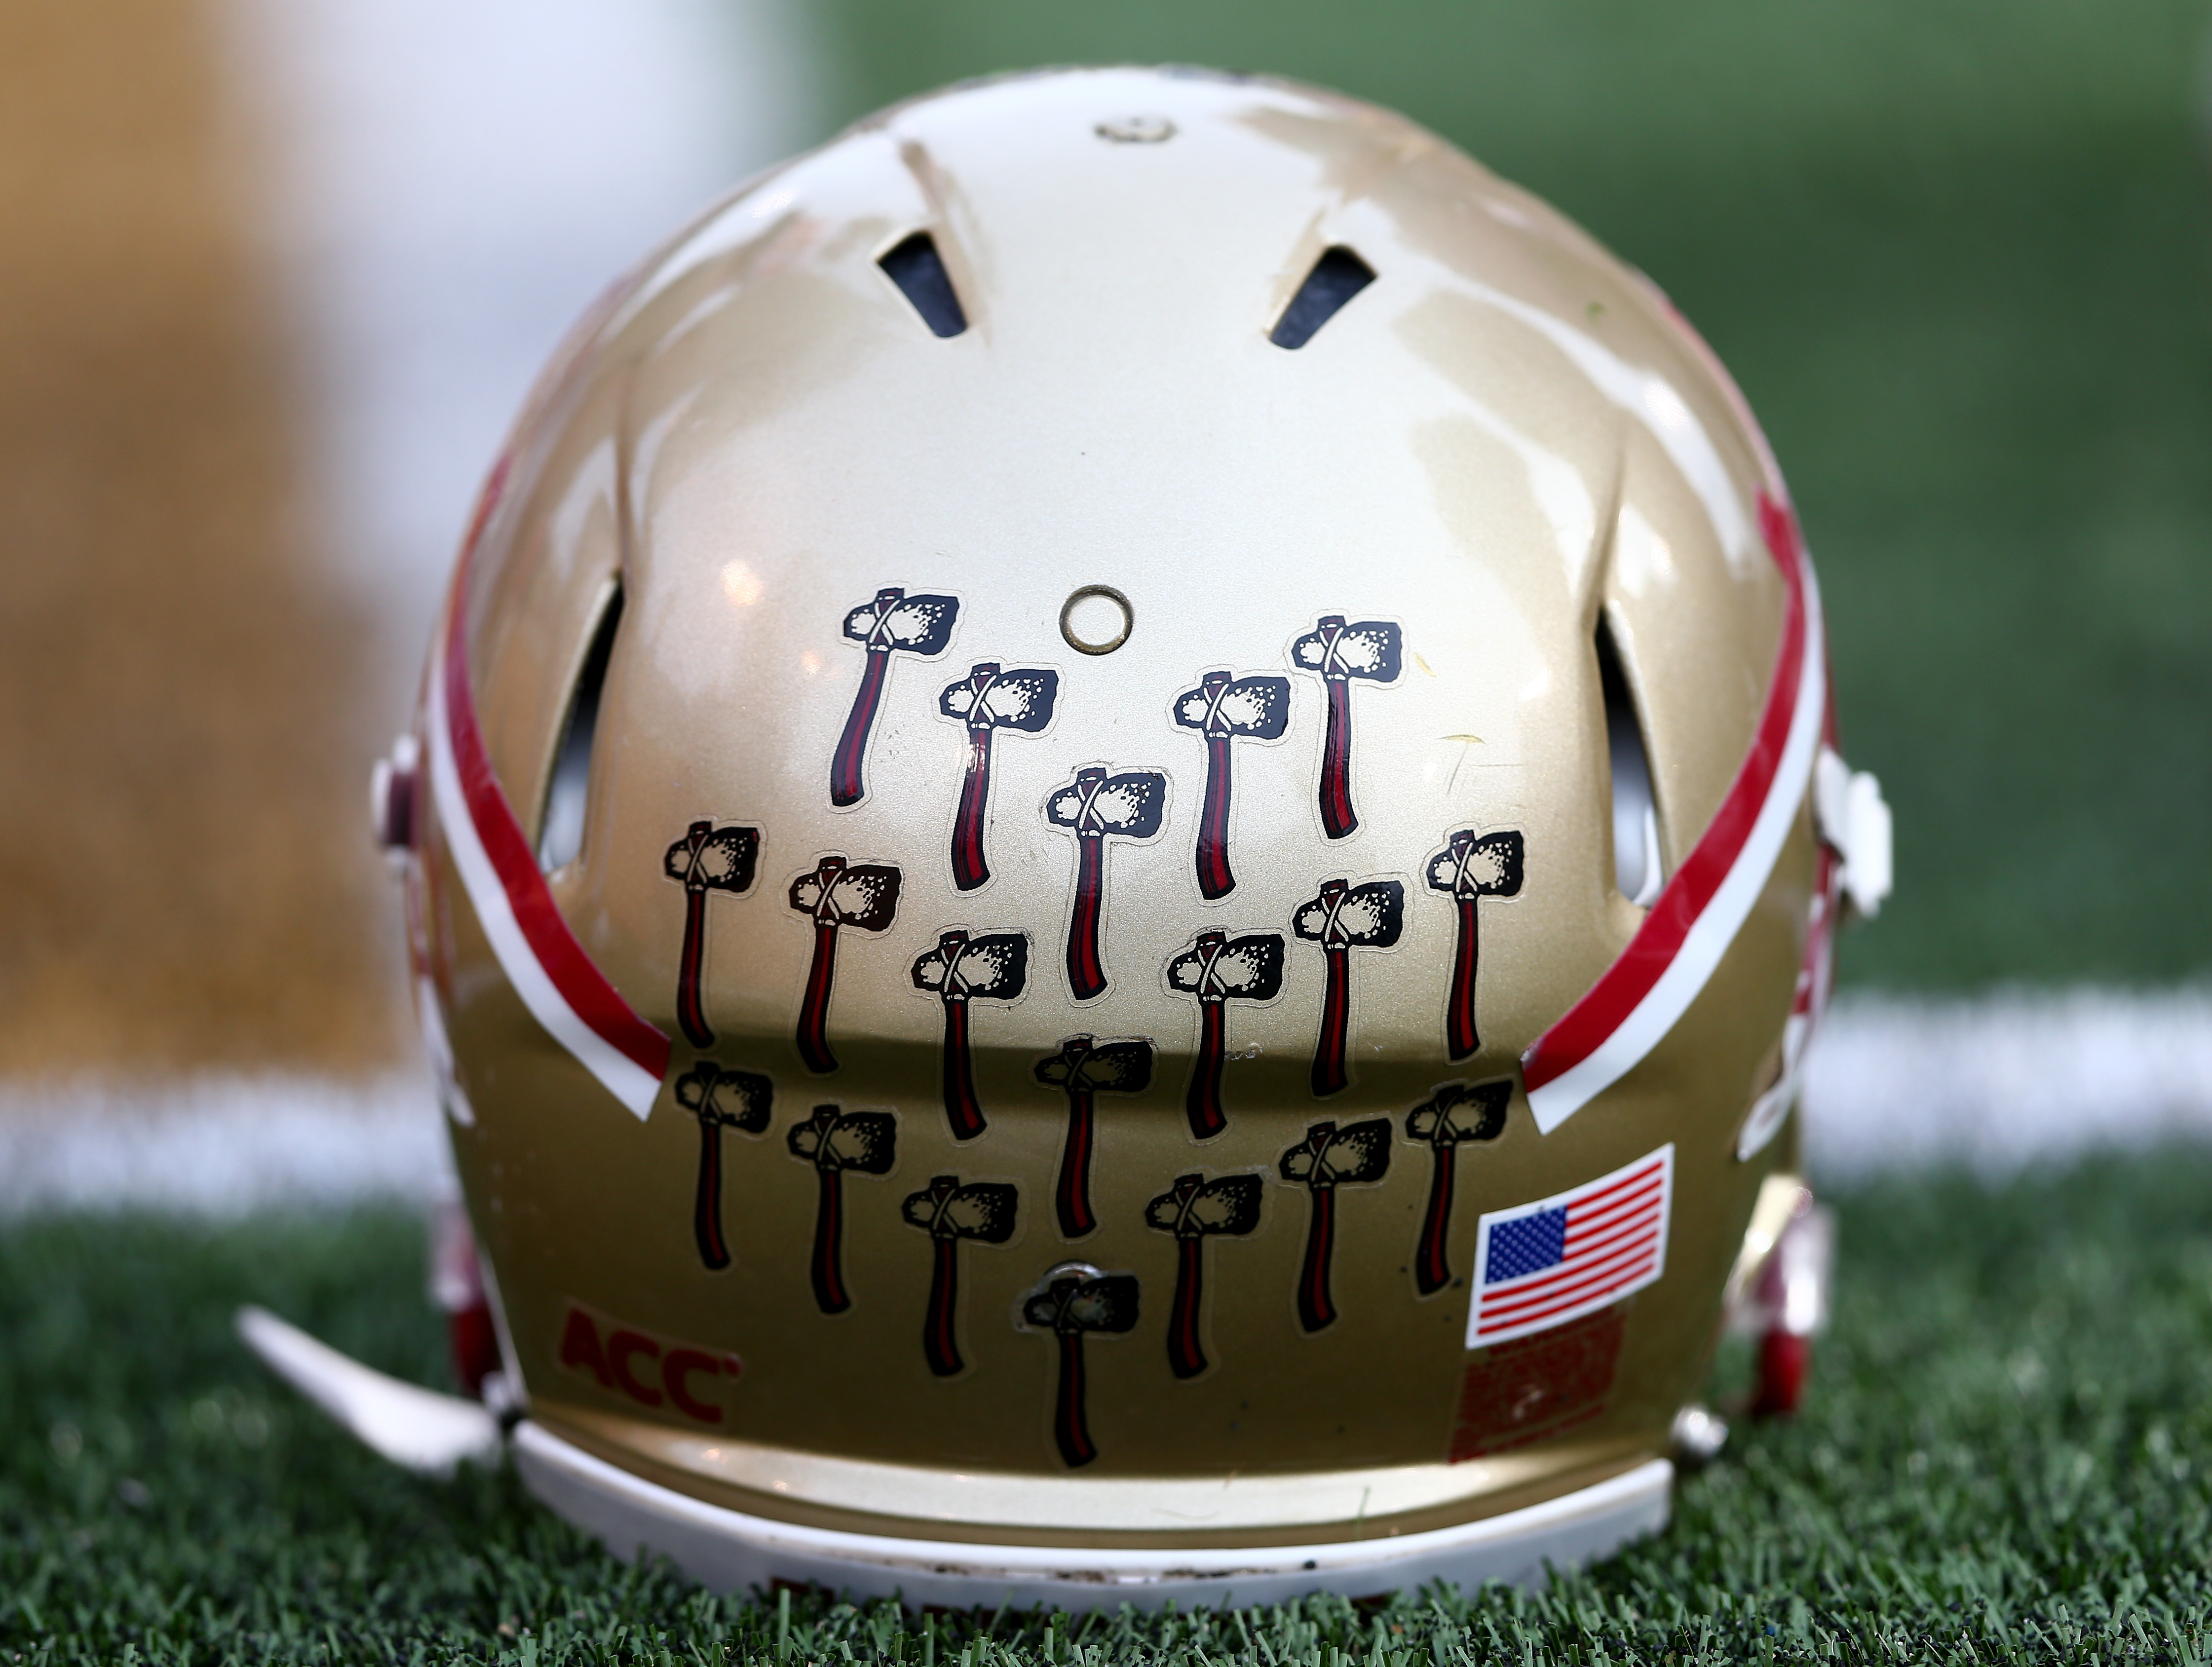 https://chopchat.com/wp-content/uploads/getty-images/2017/06/187482550-florida-state-v-wake-forest.jpg.jpg